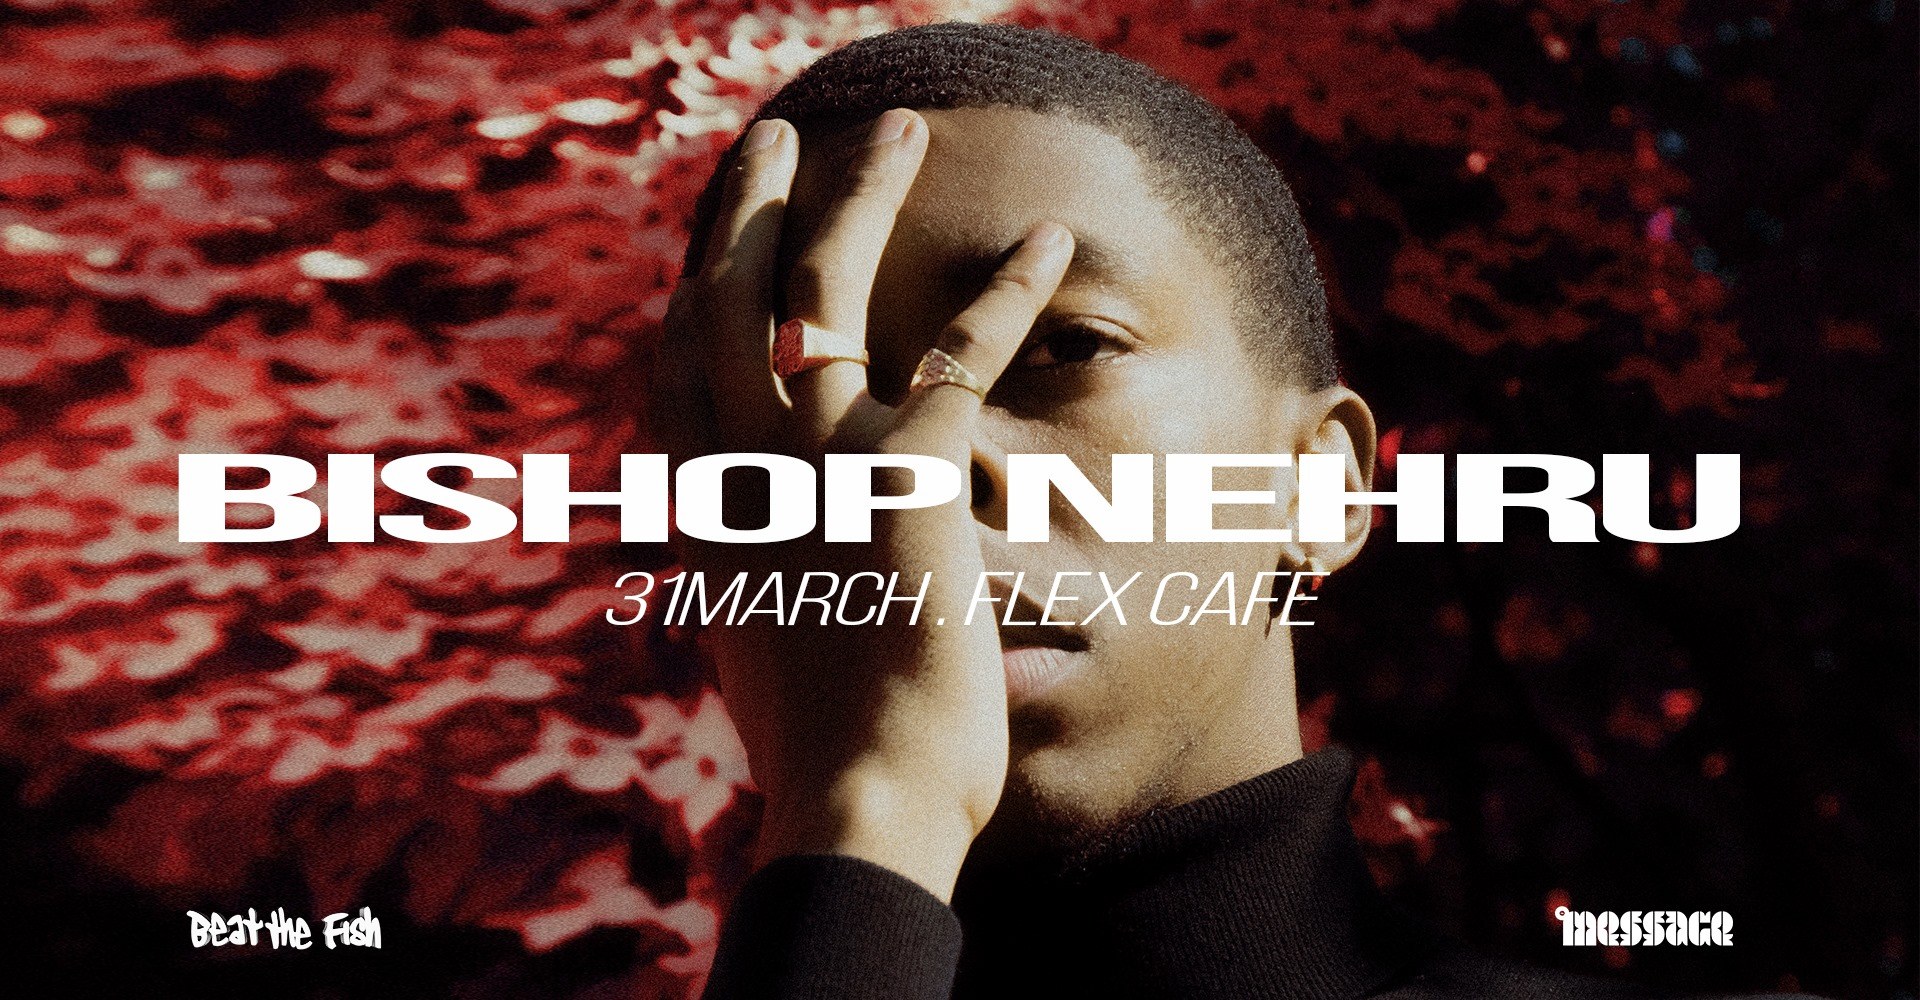 Bishop Nehru am 31. March 2020 @ Flex - Café.